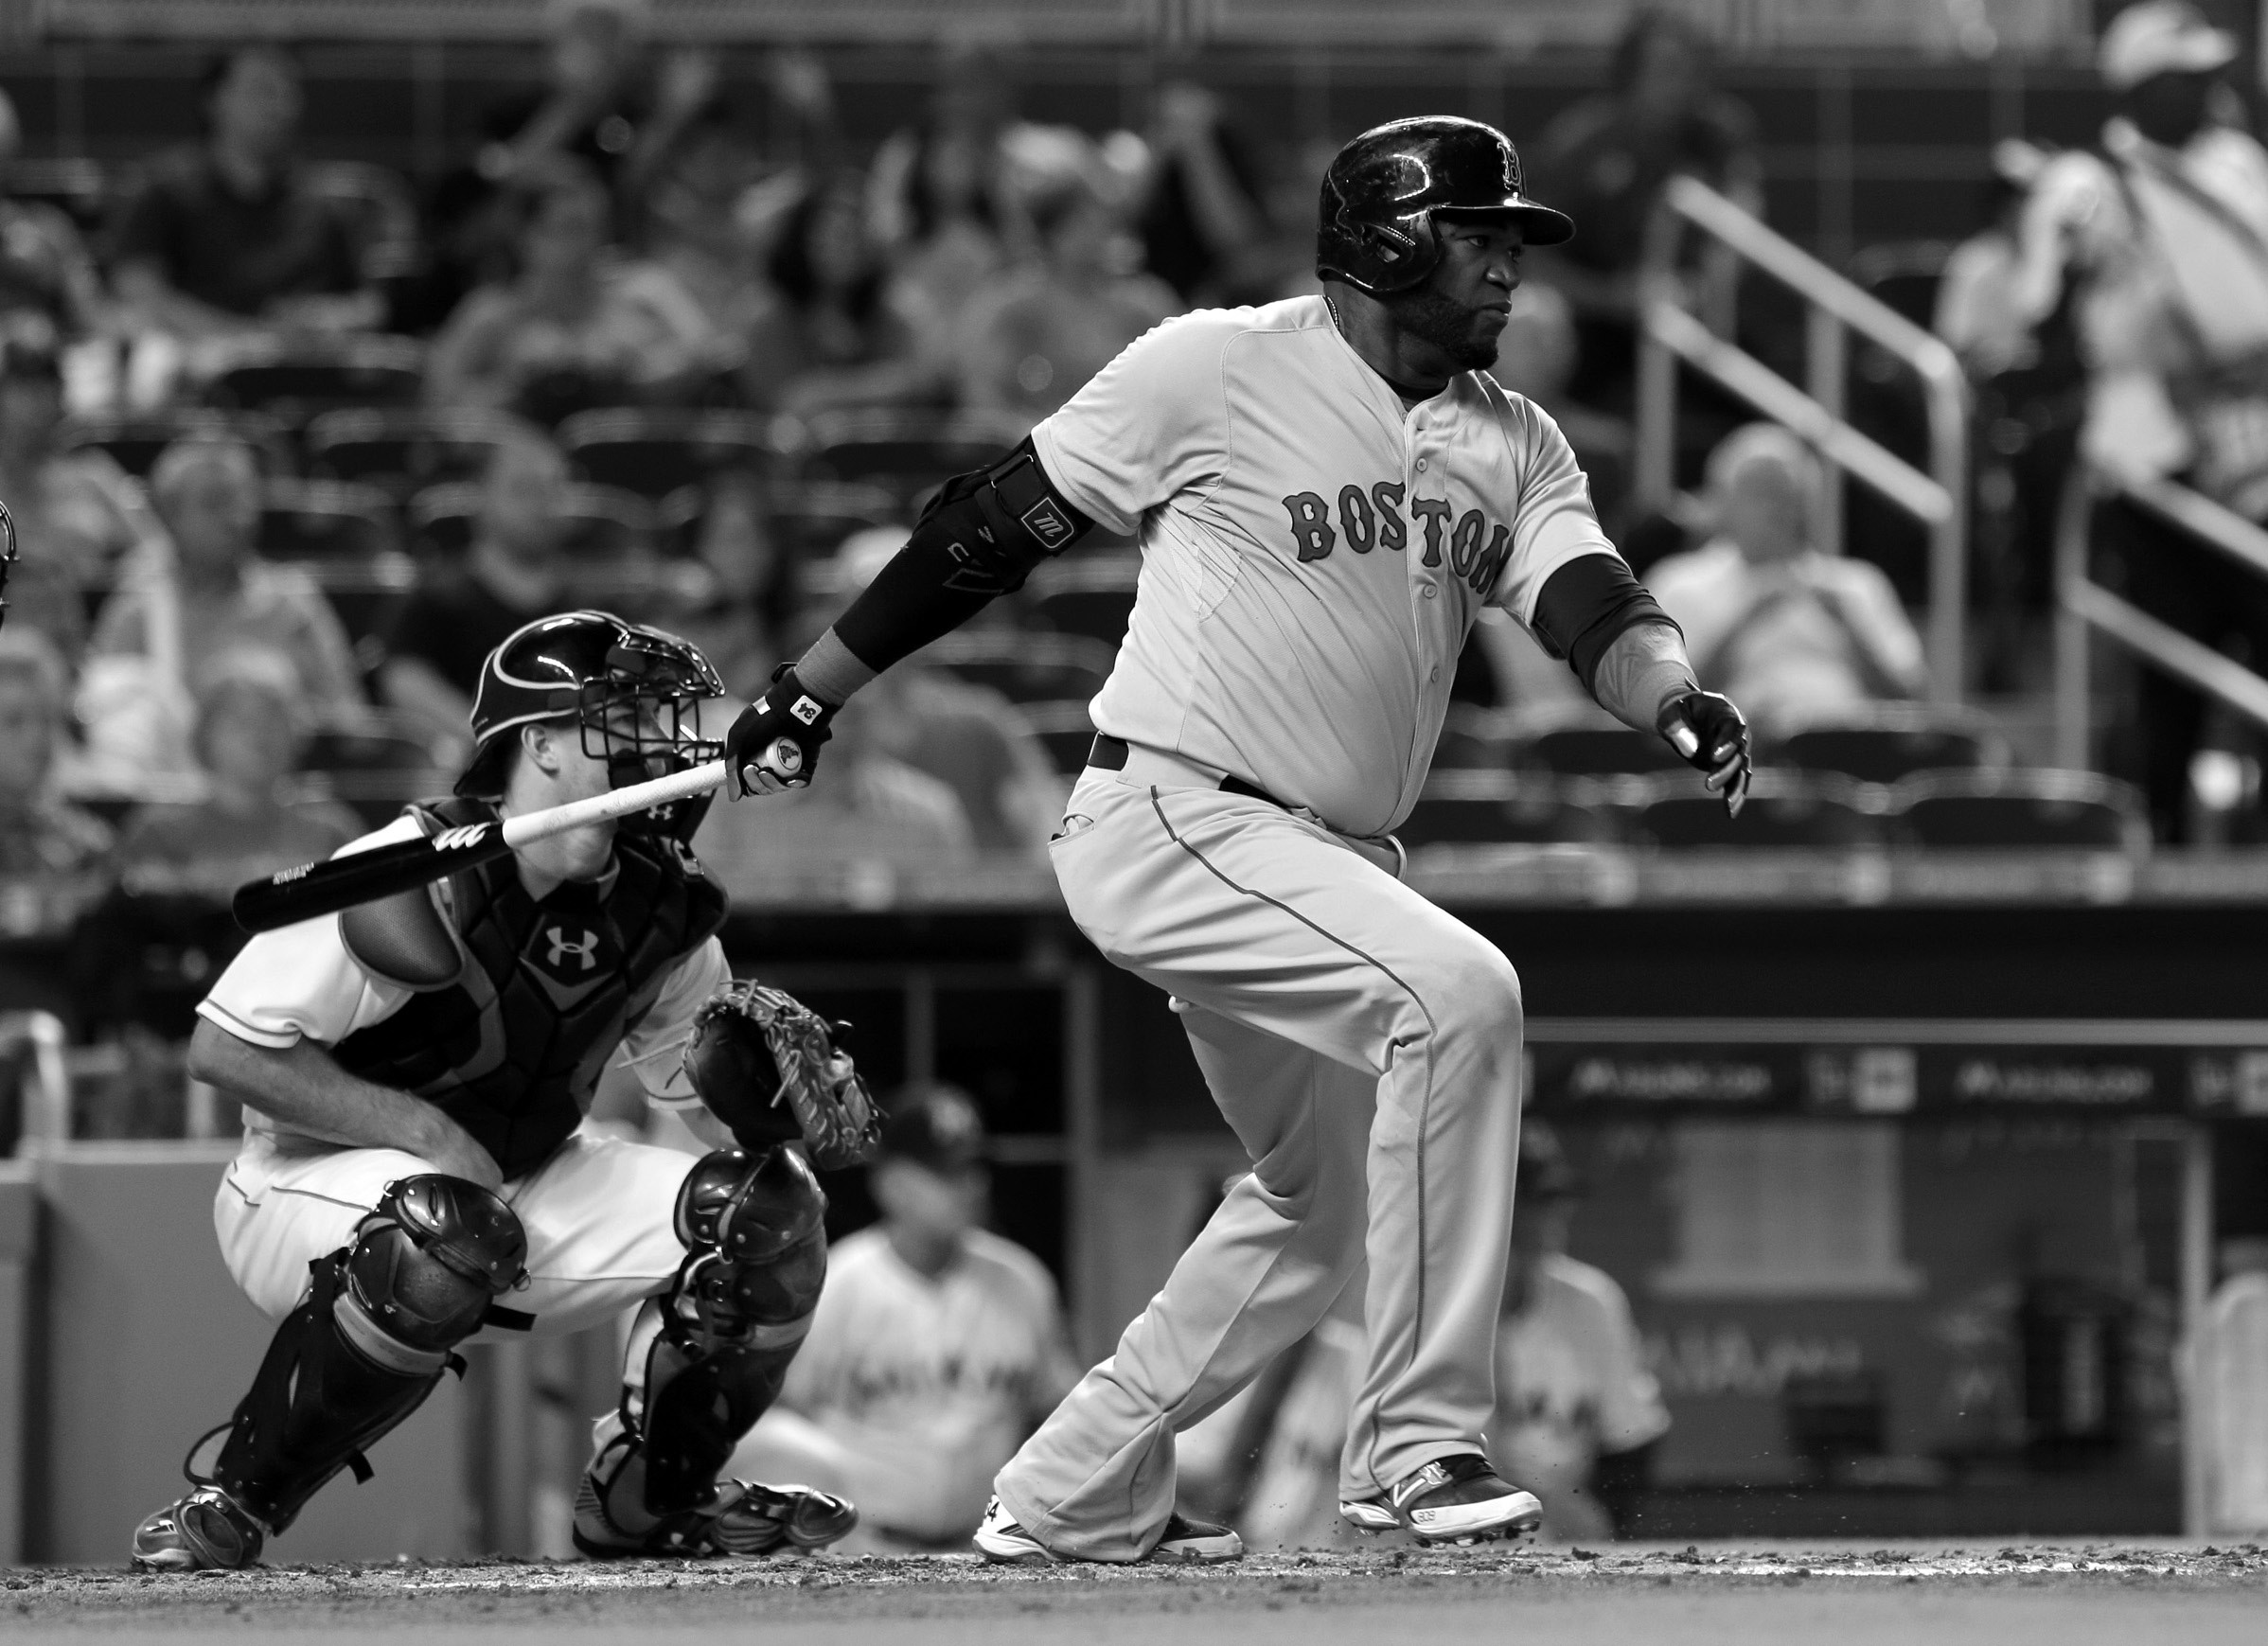 Boston Red Sox designated hitter David Ortiz follows through on a base hit against the Miami Marlins during the fourth inning of a baseball game, Wednesday in Miami. Xander Bogaerts reached third base on the single. Ortiz hit two home runs in the game, but the Red Sox were blasted by the Marlins, 14-6.